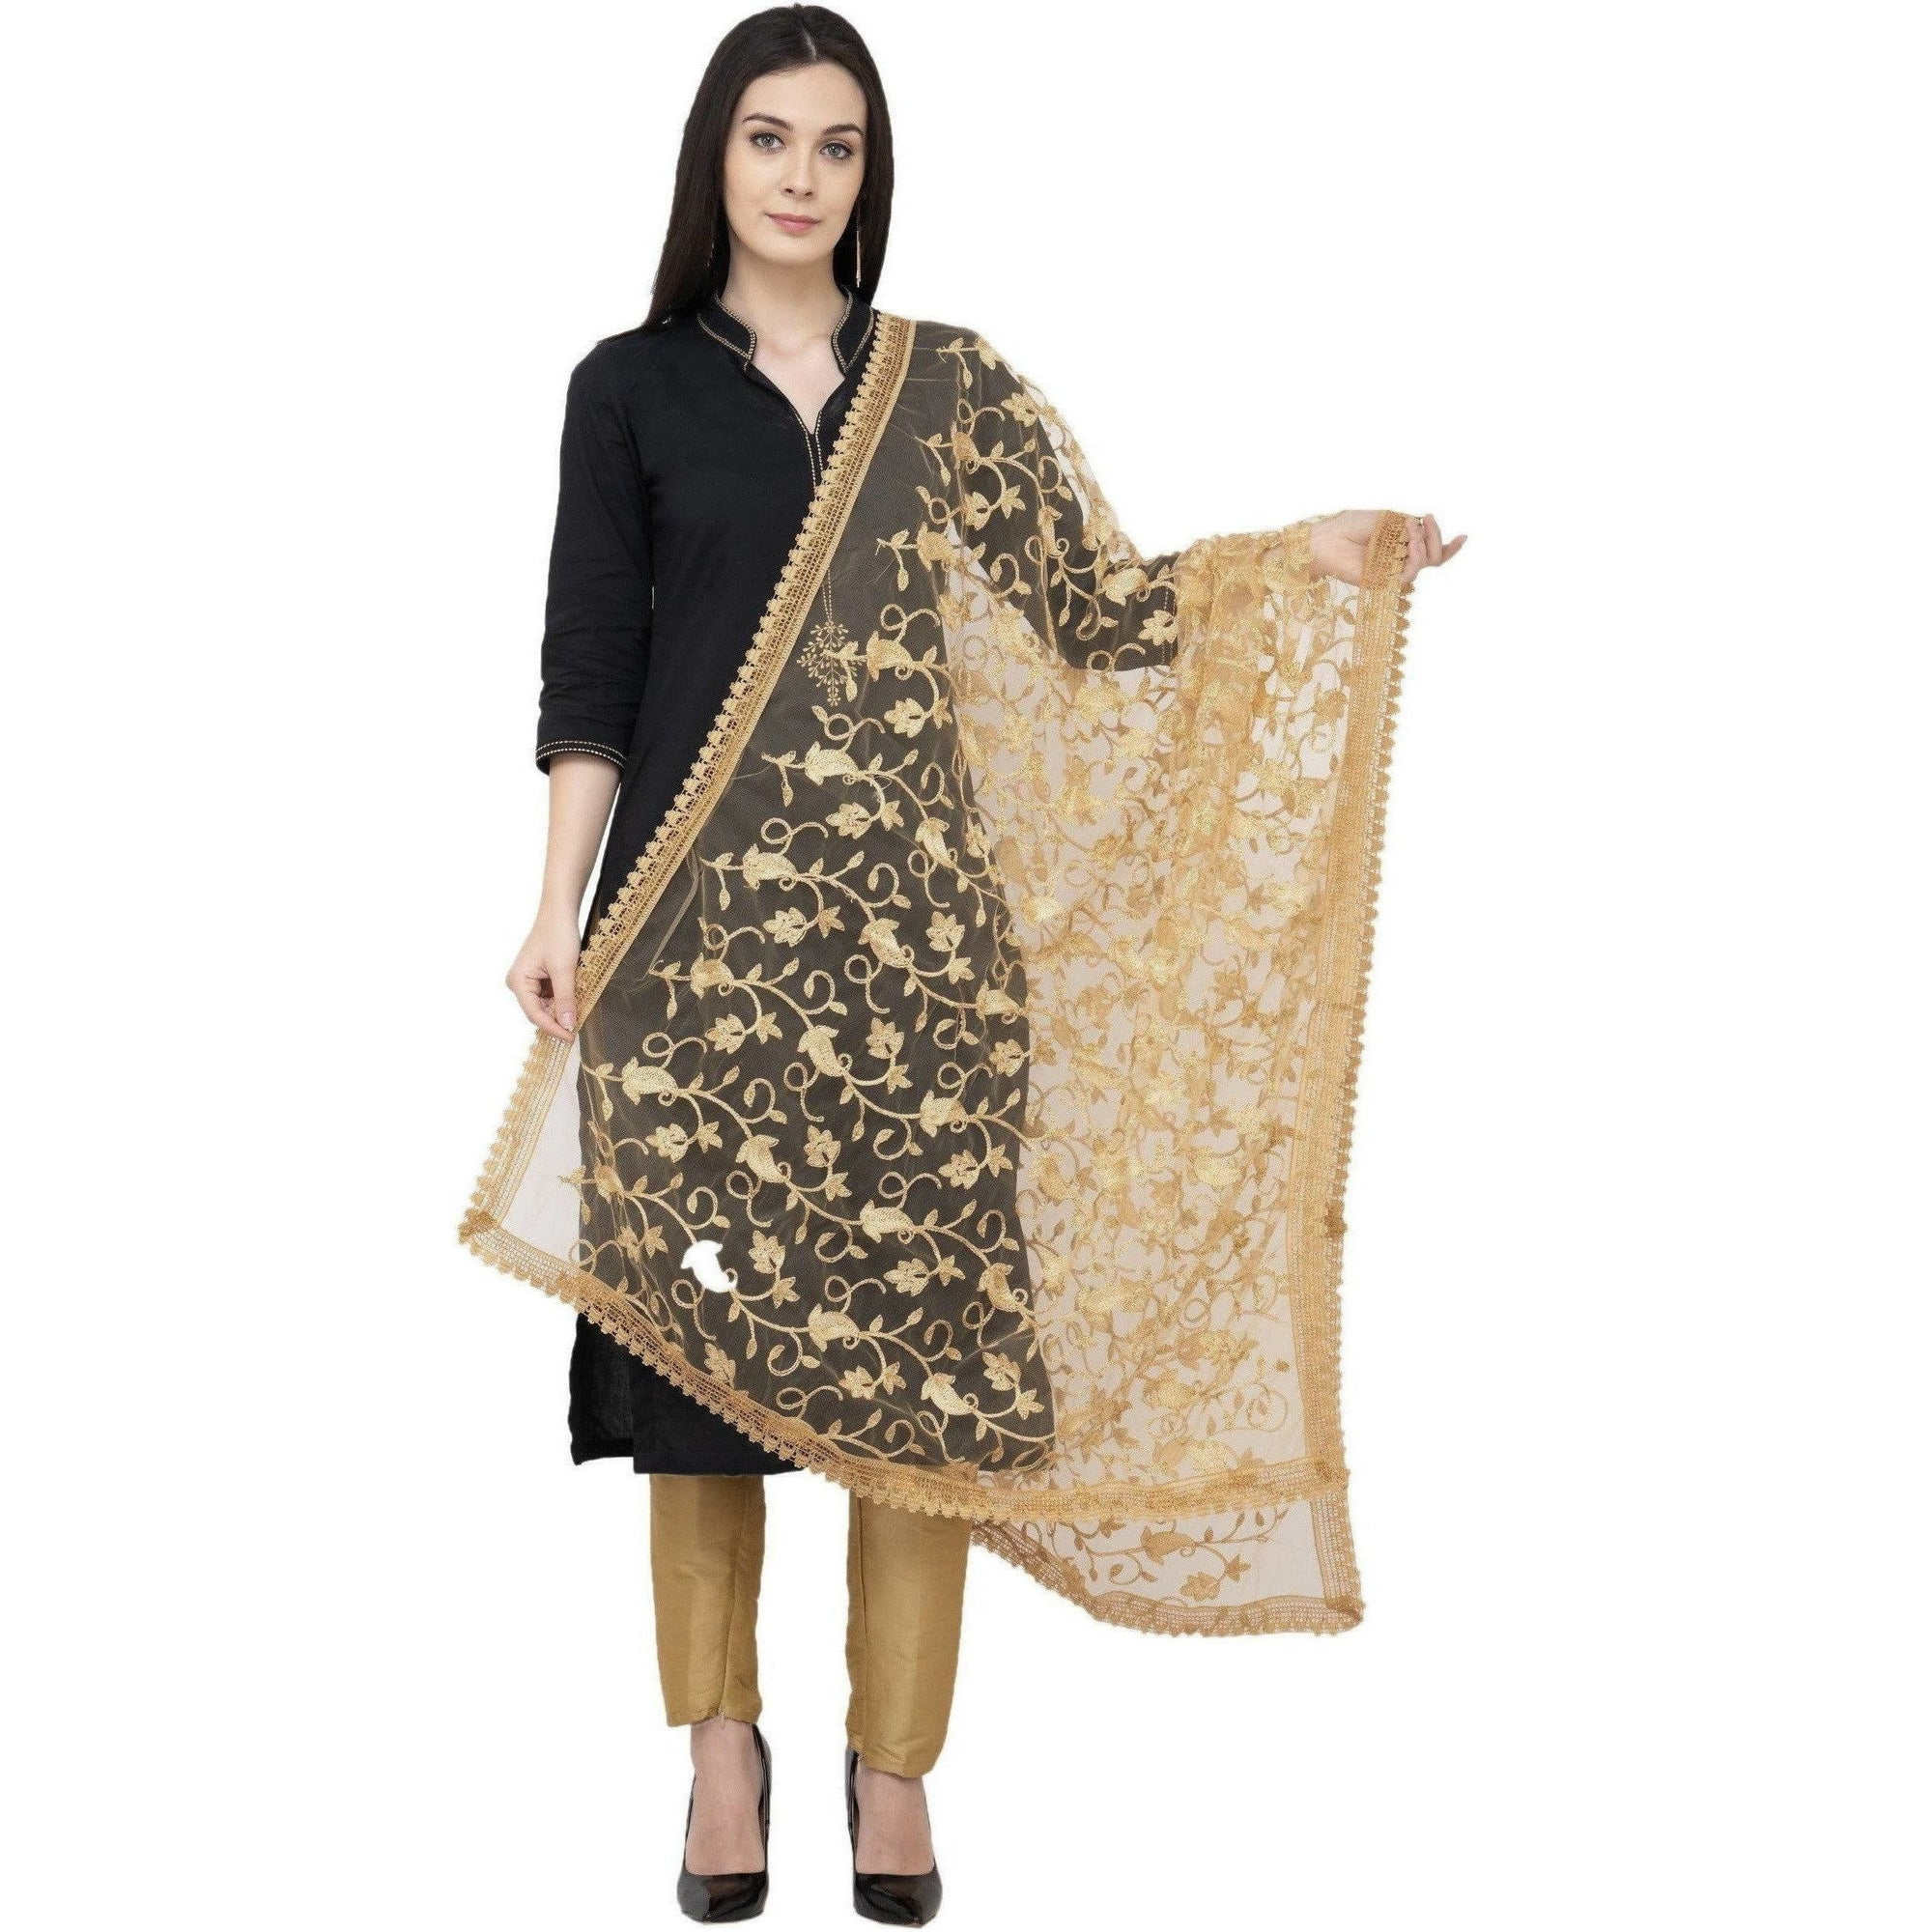 A R Silk Net Emb. Fancy Dupatta Color Golden Dupatta or Chunni